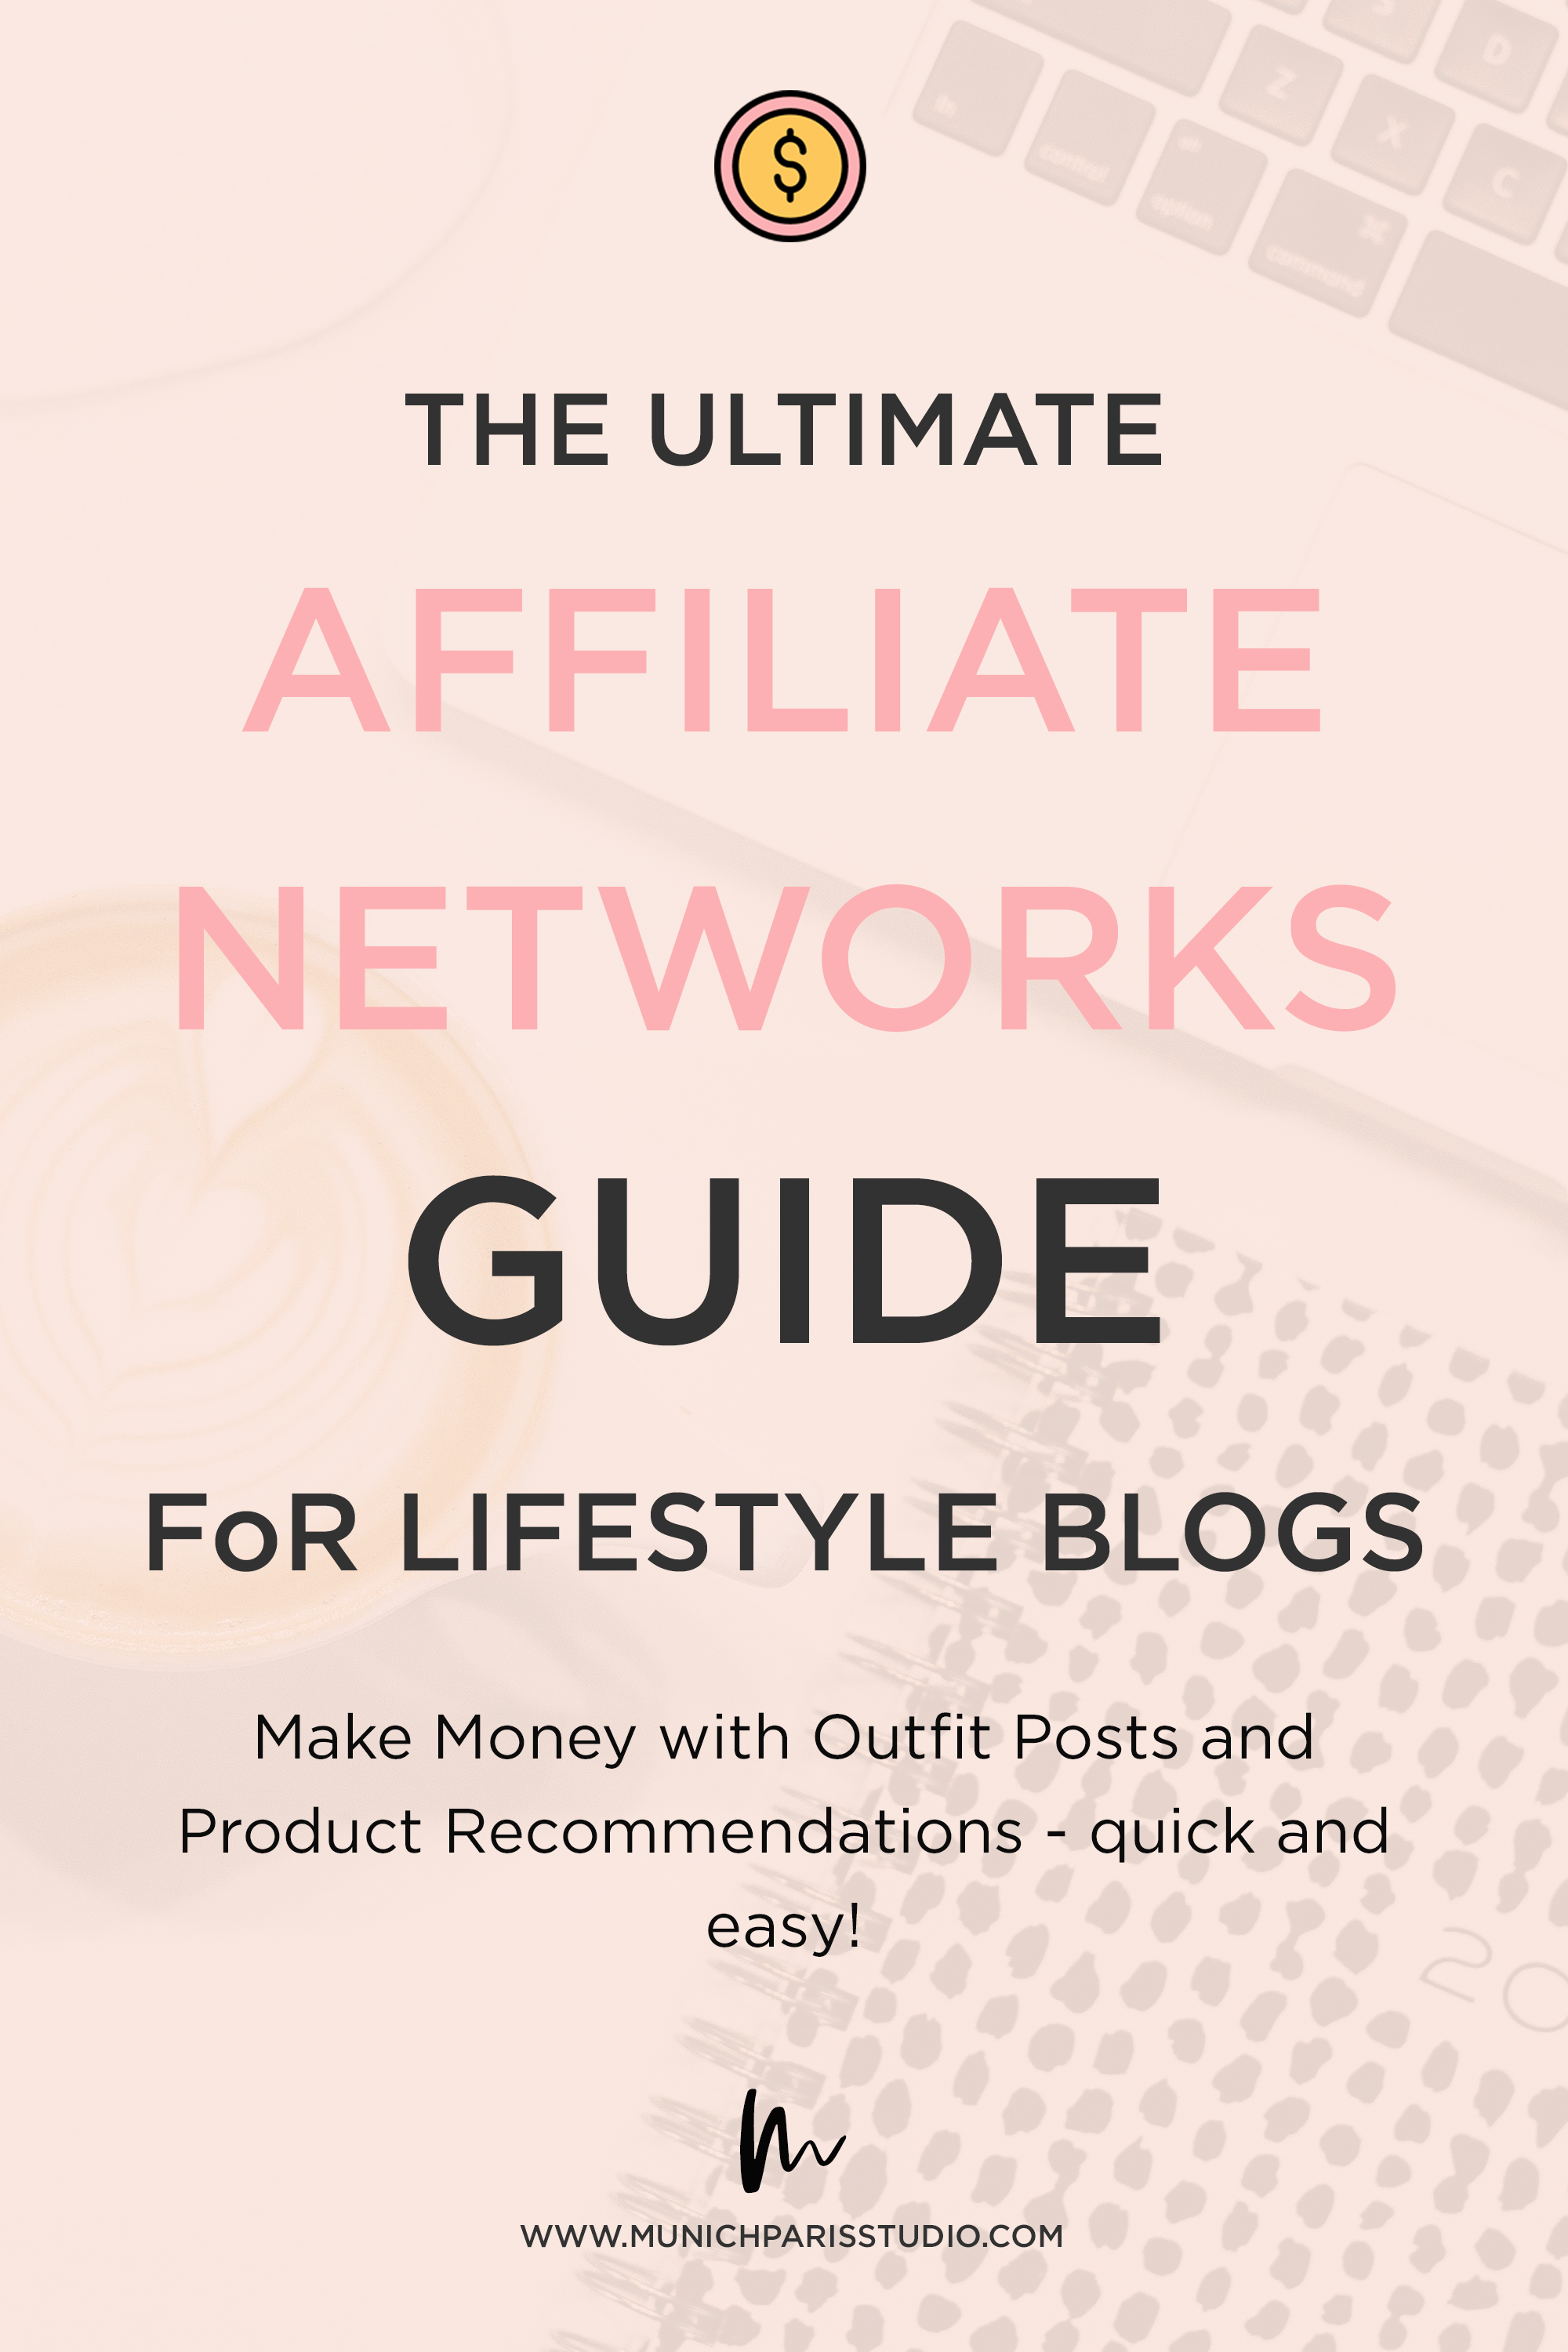 the-ultimate-affiliate-network-guide-amazon-affilaite-marketing-rewardstyle-fashion-lifestyle-blog-make-money-blogging-secrets-munichparisstudio